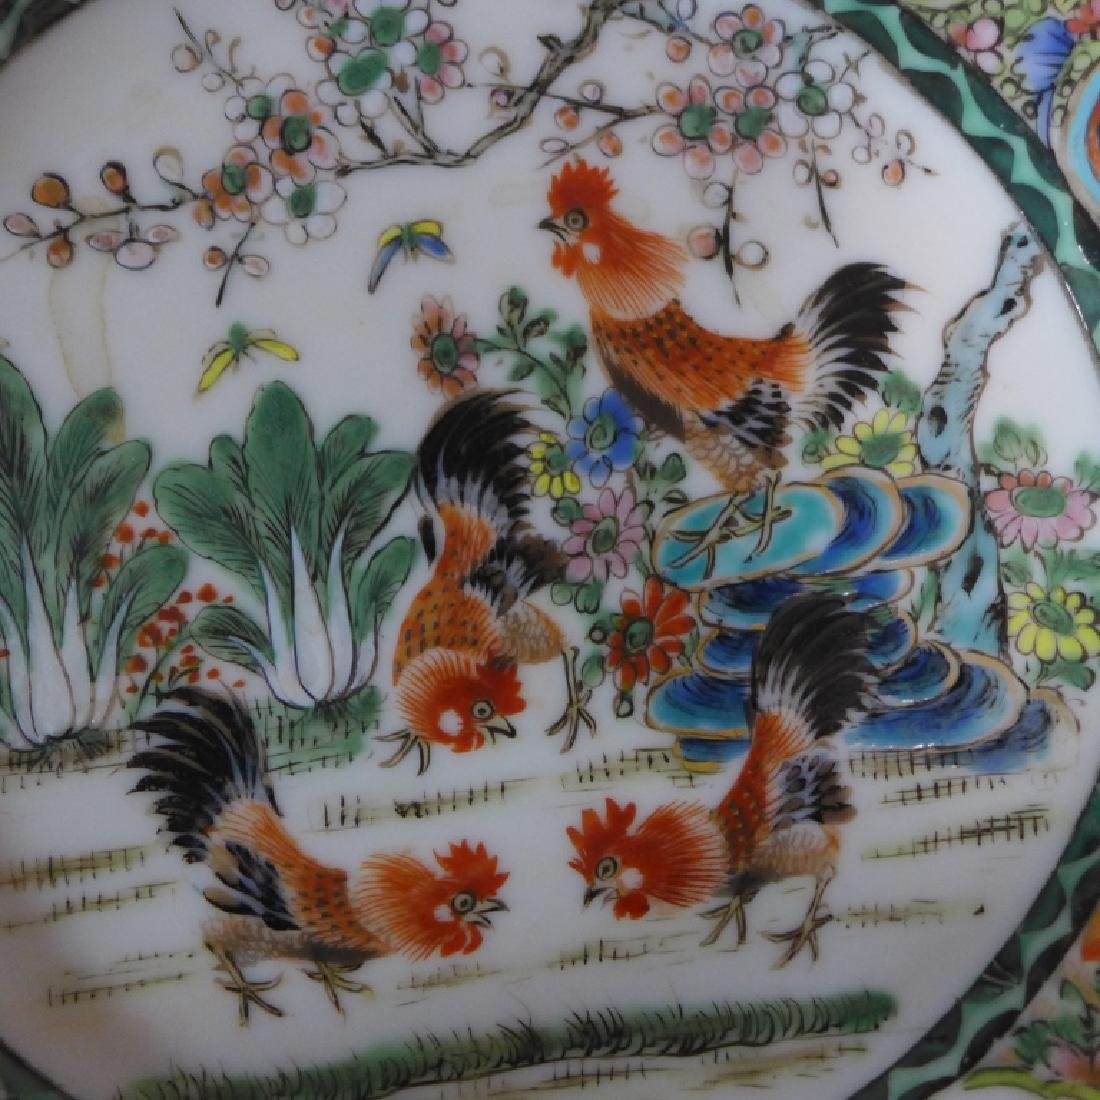 Antique Chinese Export Porcelain Rooster Plate - 3